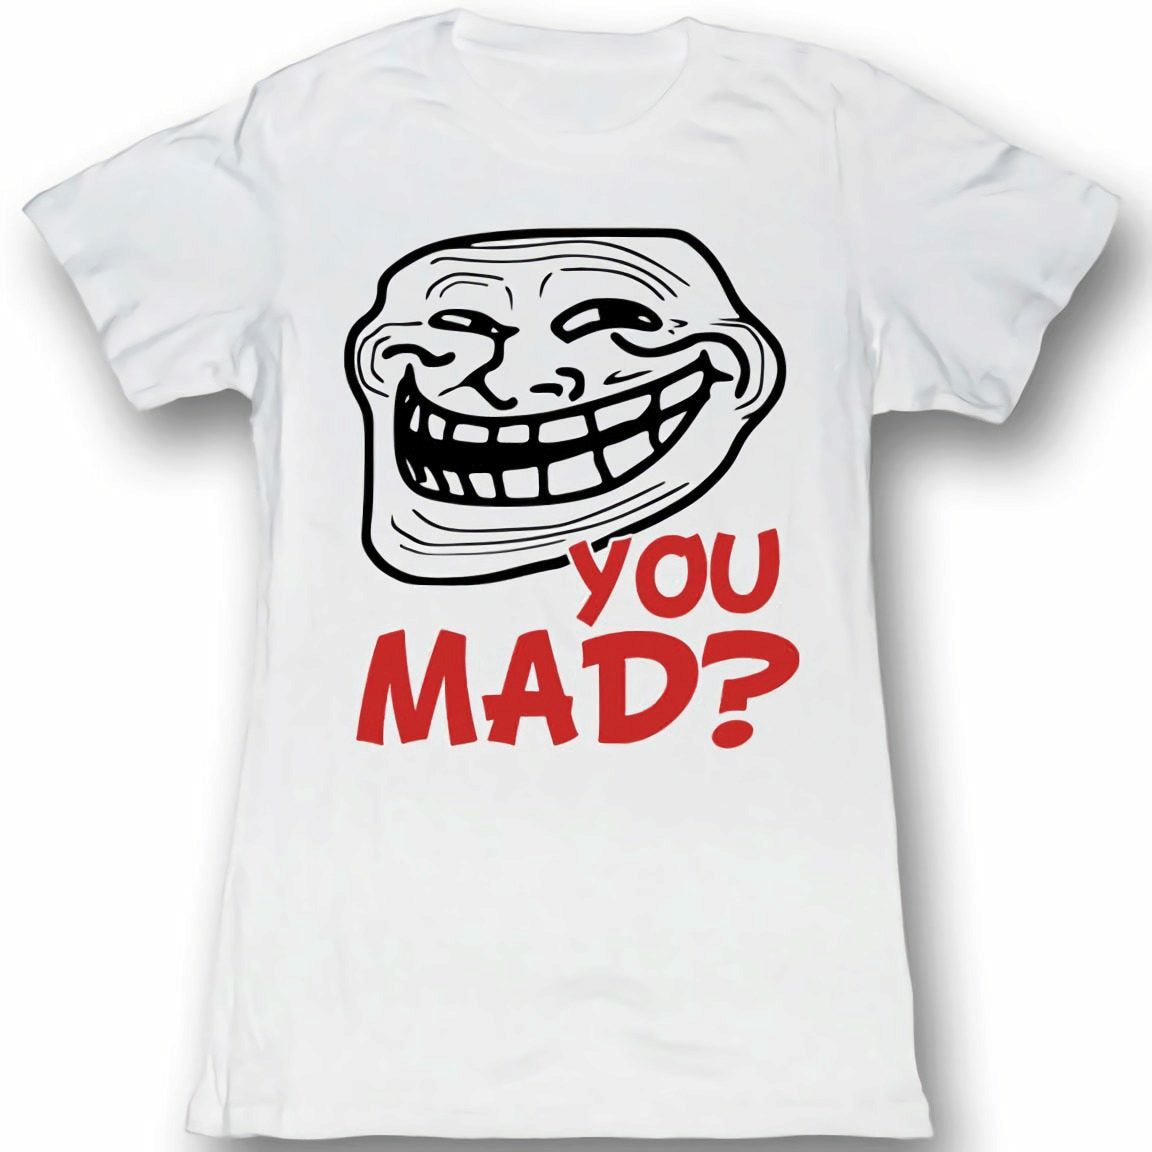 Troll Face You Mad? Juniors White Lightweight T-Shirt